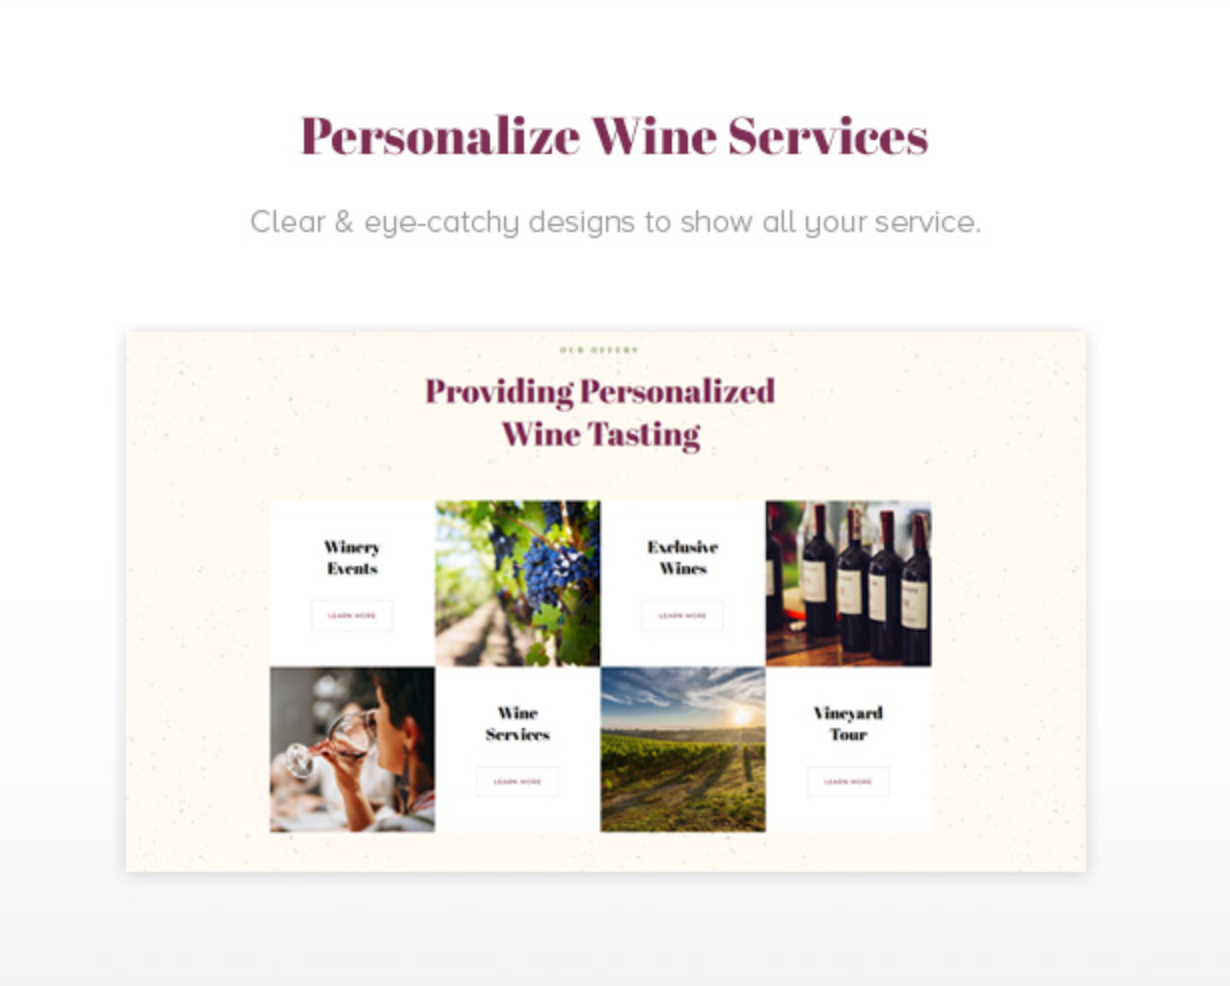 Royanwine Personalized Wine Services for Vinyard, Winery, Wine Makers, Dairy Farm